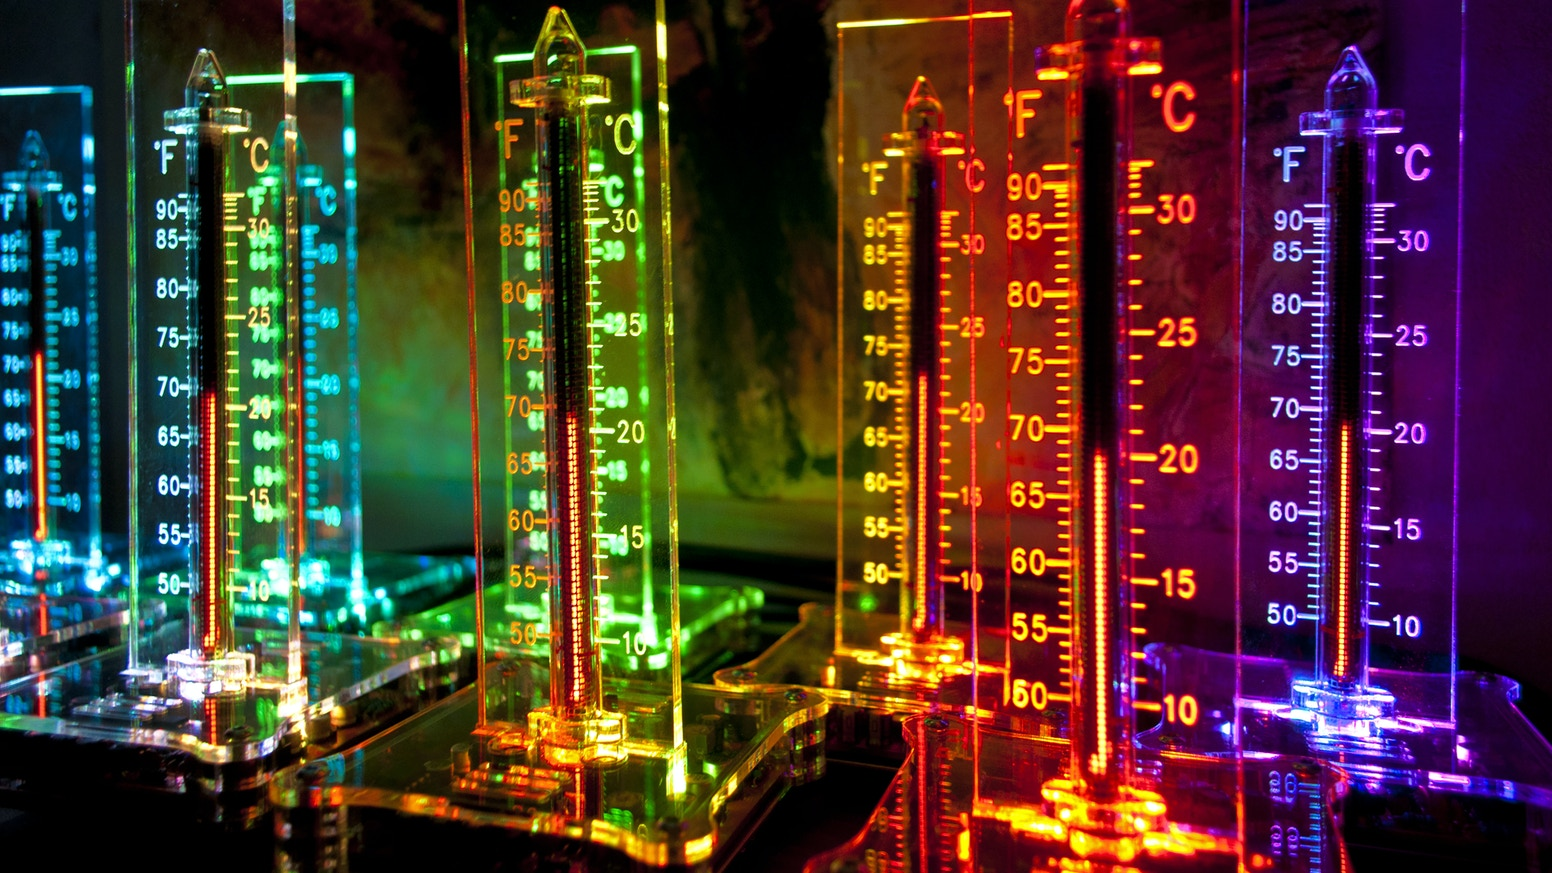 NixieTherm, an IN-13 Nixie bargraph tube based indoor thermometer DIY kit in fully analog design, powered by 5V USB